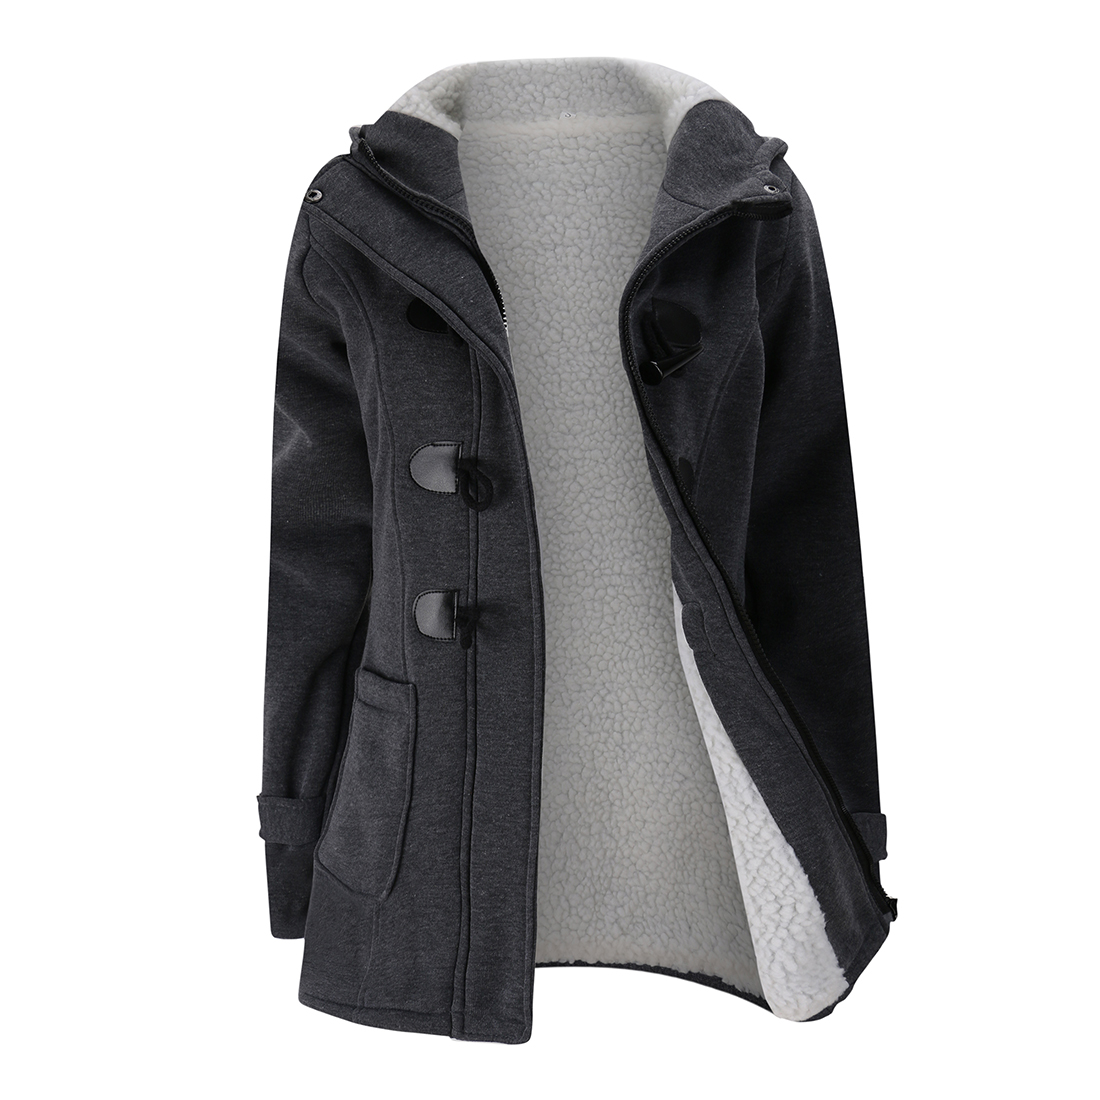 Women's Fashion Trench Coat Autumn Thick Lining Winter Jacket Overcoat Female Casual Long Hooded Coat Zipper Horn Button